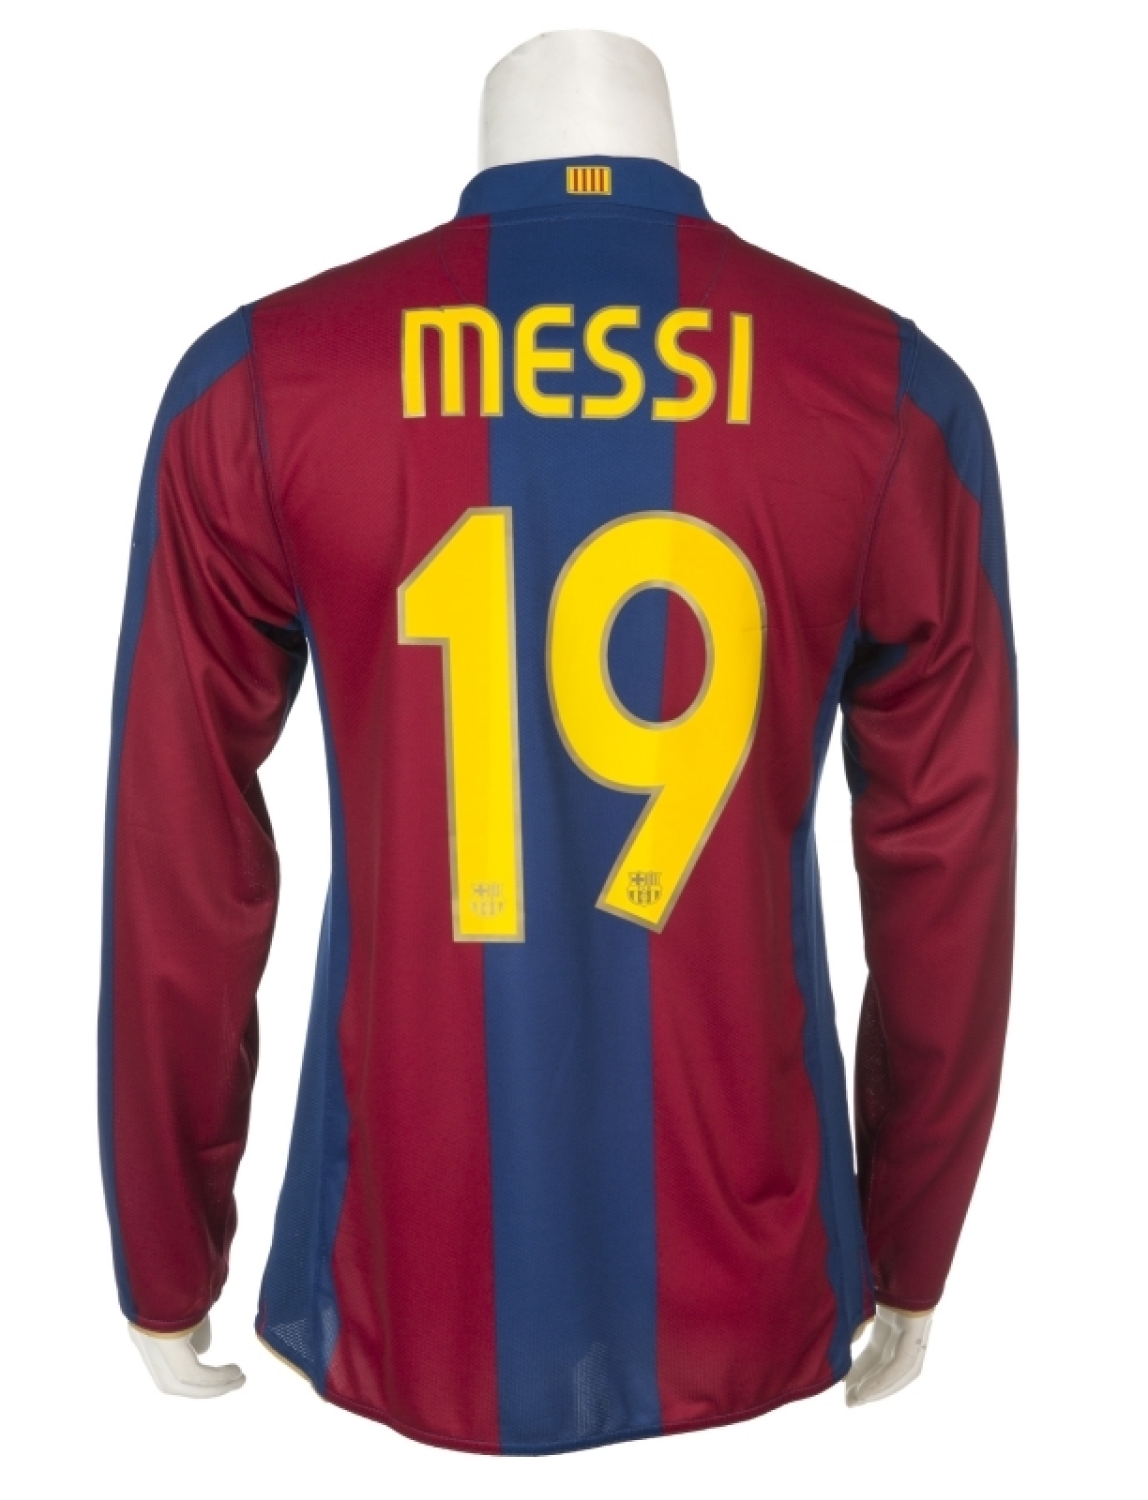 f0ecf3dbd5c LIONEL MESSI 2007 FC BARCELONA NUMBER 19 MATCH WORN JERSEY Please Wait...  Click image to enlarge